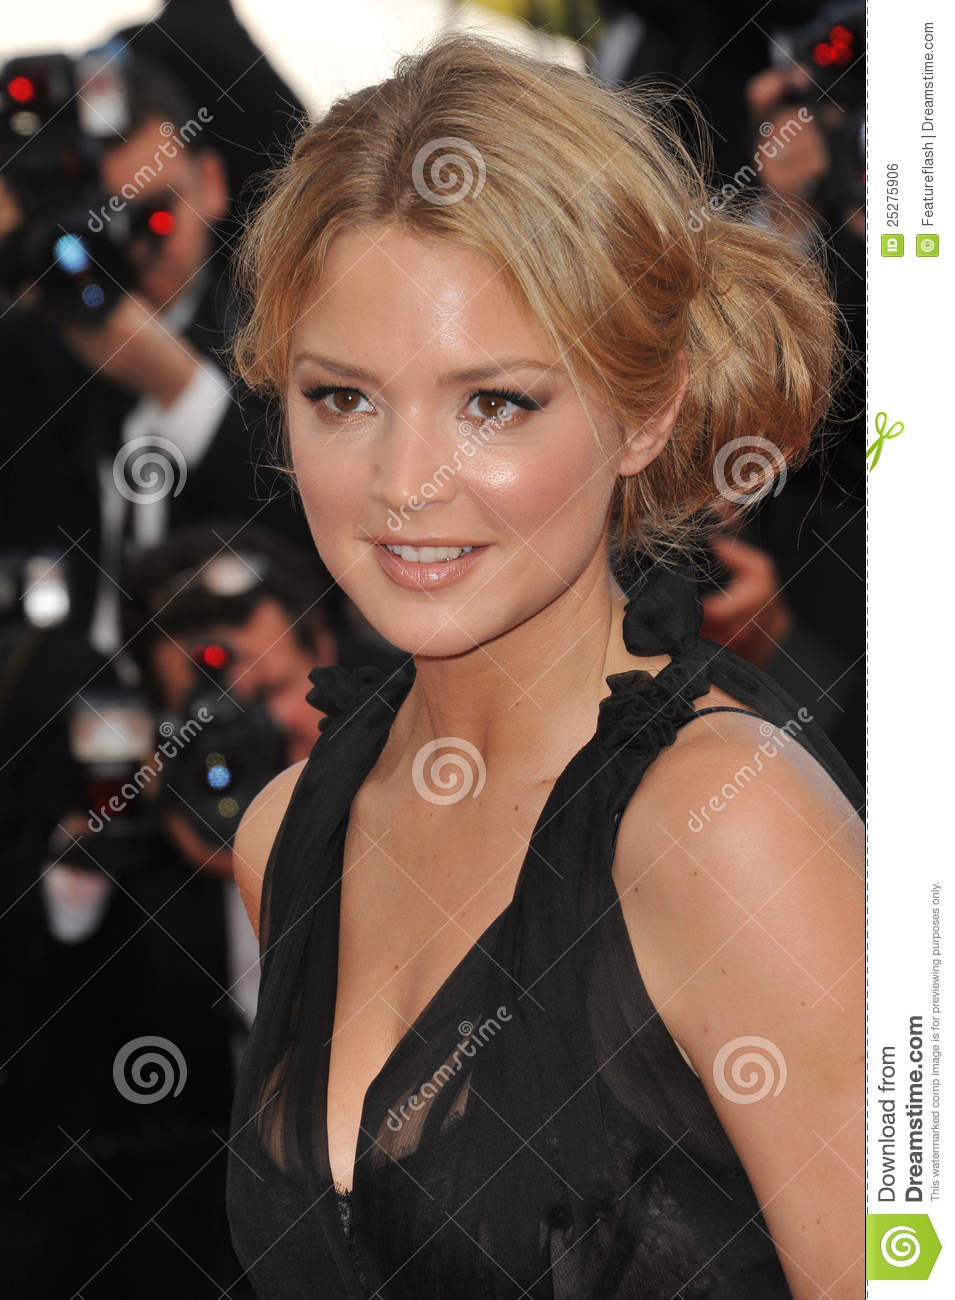 virginie efira cannesvirginie efira films, virginie efira 2016, virginie efira cannes, virginie efira vk, virginie efira 2017, virginie efira wiki, virginie efira filmleri, virginie efira elle, virginie efira gif, virginie efira wikipedia, virginie efira dating, virginie efira 20 ans d'écart, virginie efira origine, virginie efira bra size, virginie efira - it boy 2013, virginie efira filmografia, virginie efira vincent lacoste, virginie efira getty images, virginie efira peliculas, virginie efira filmography